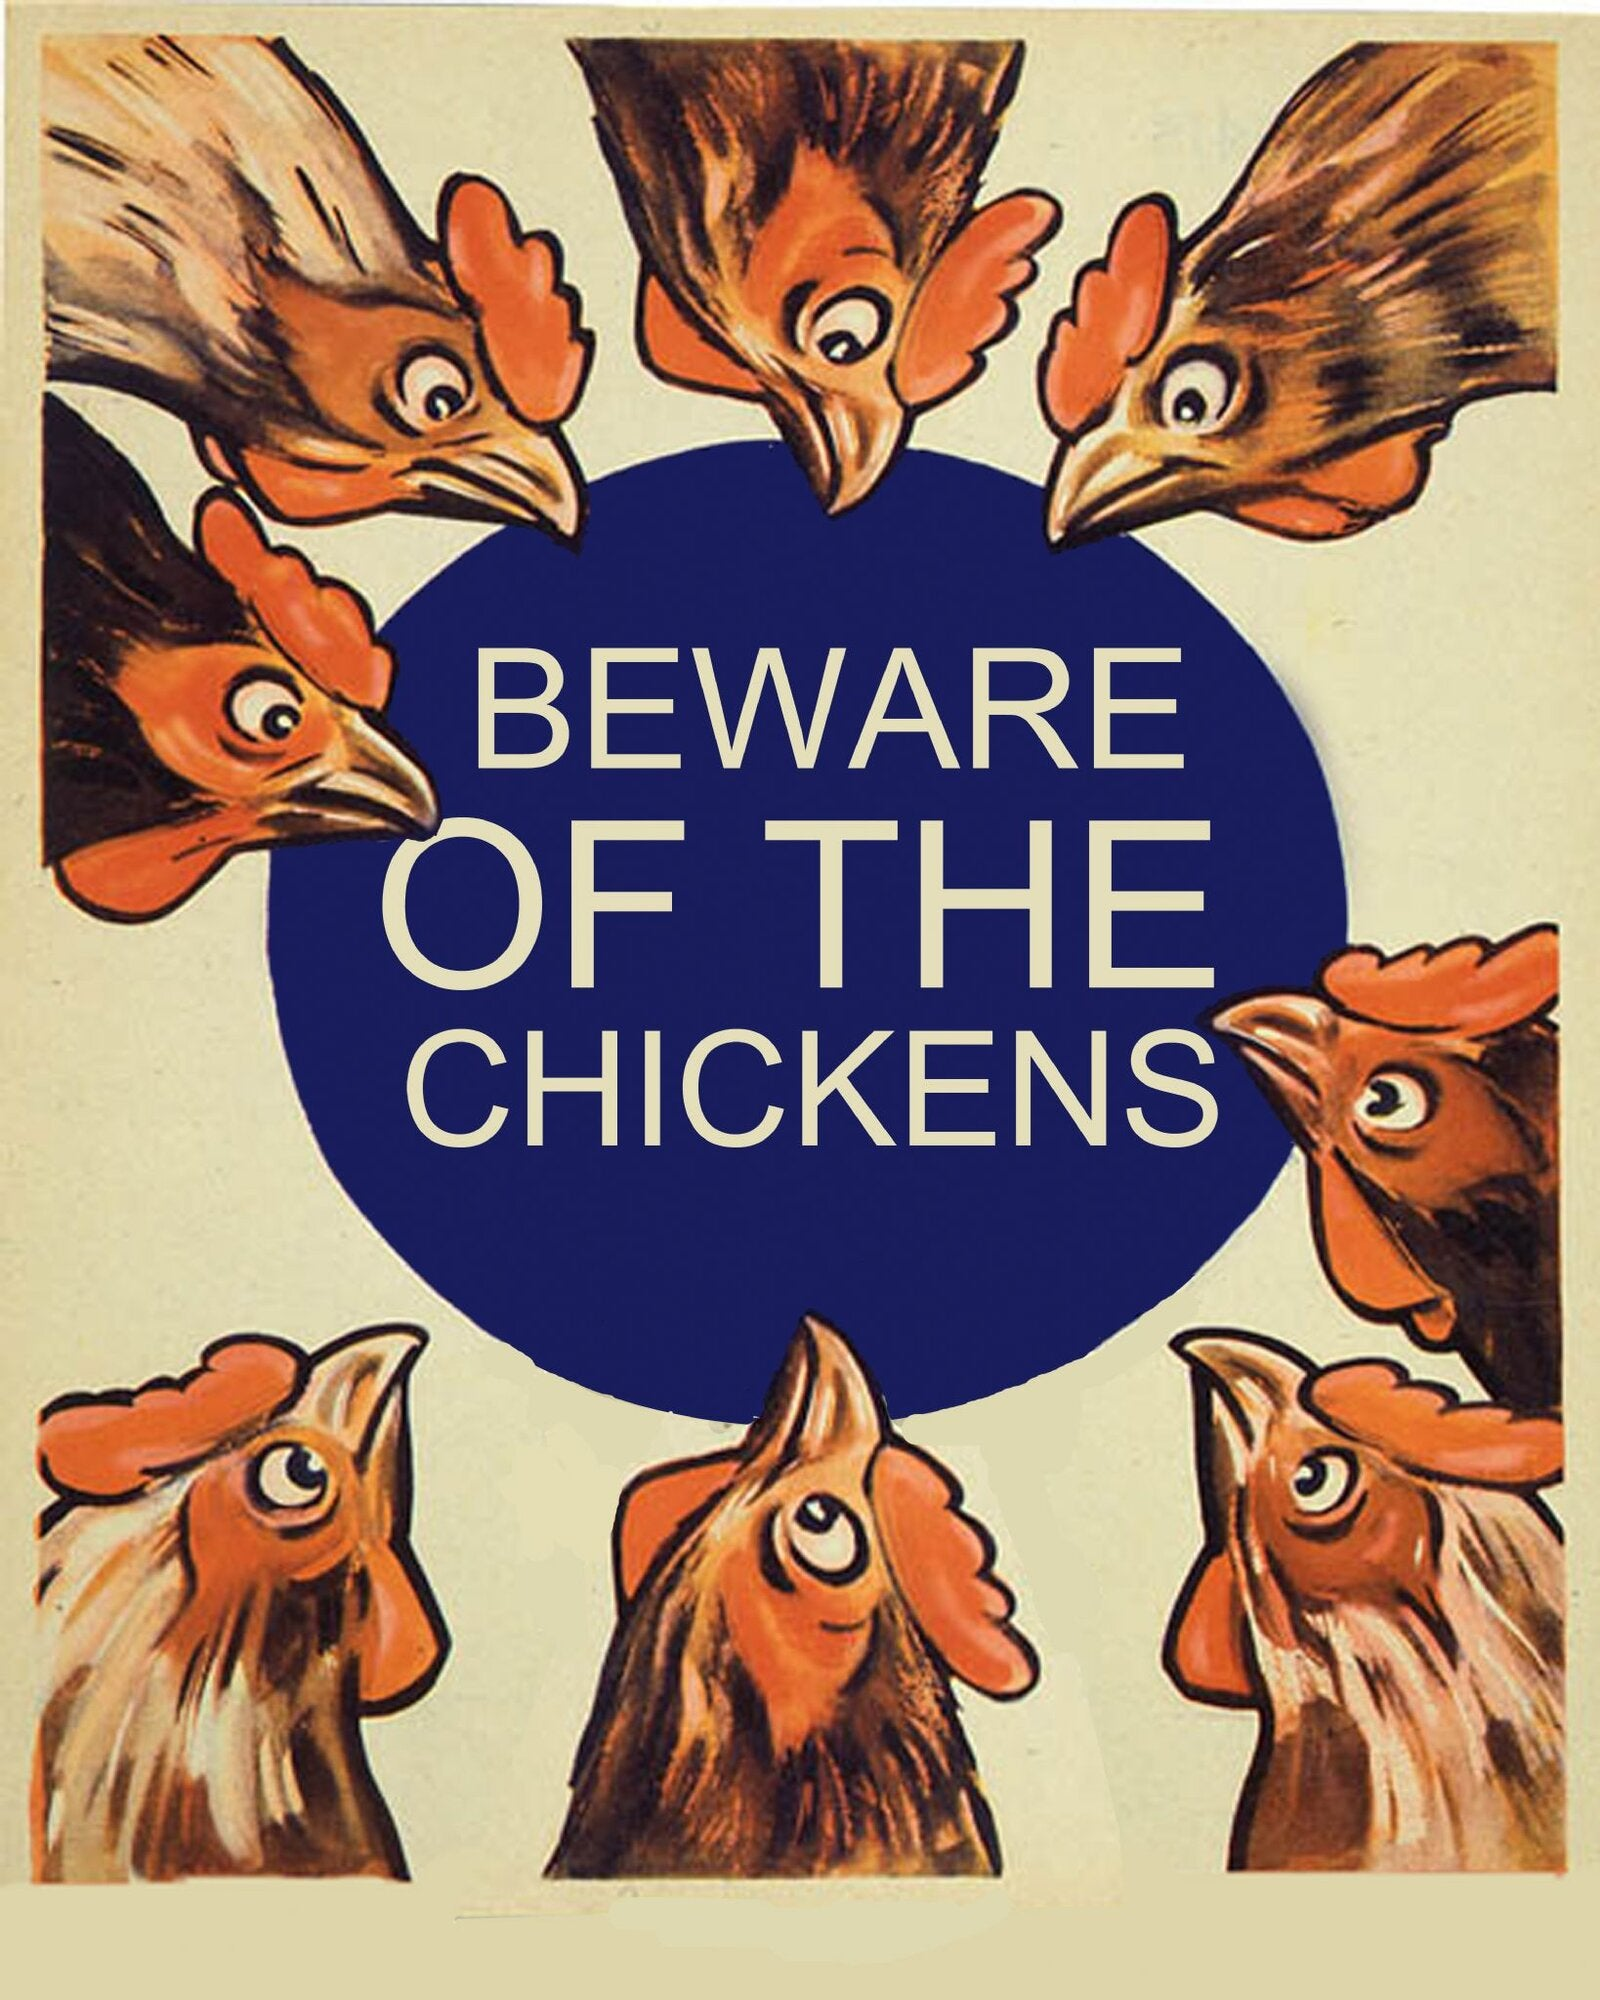 Vintage Metal Sign - Beware Of The Chickens, Business & Industrial by Gifts24-7